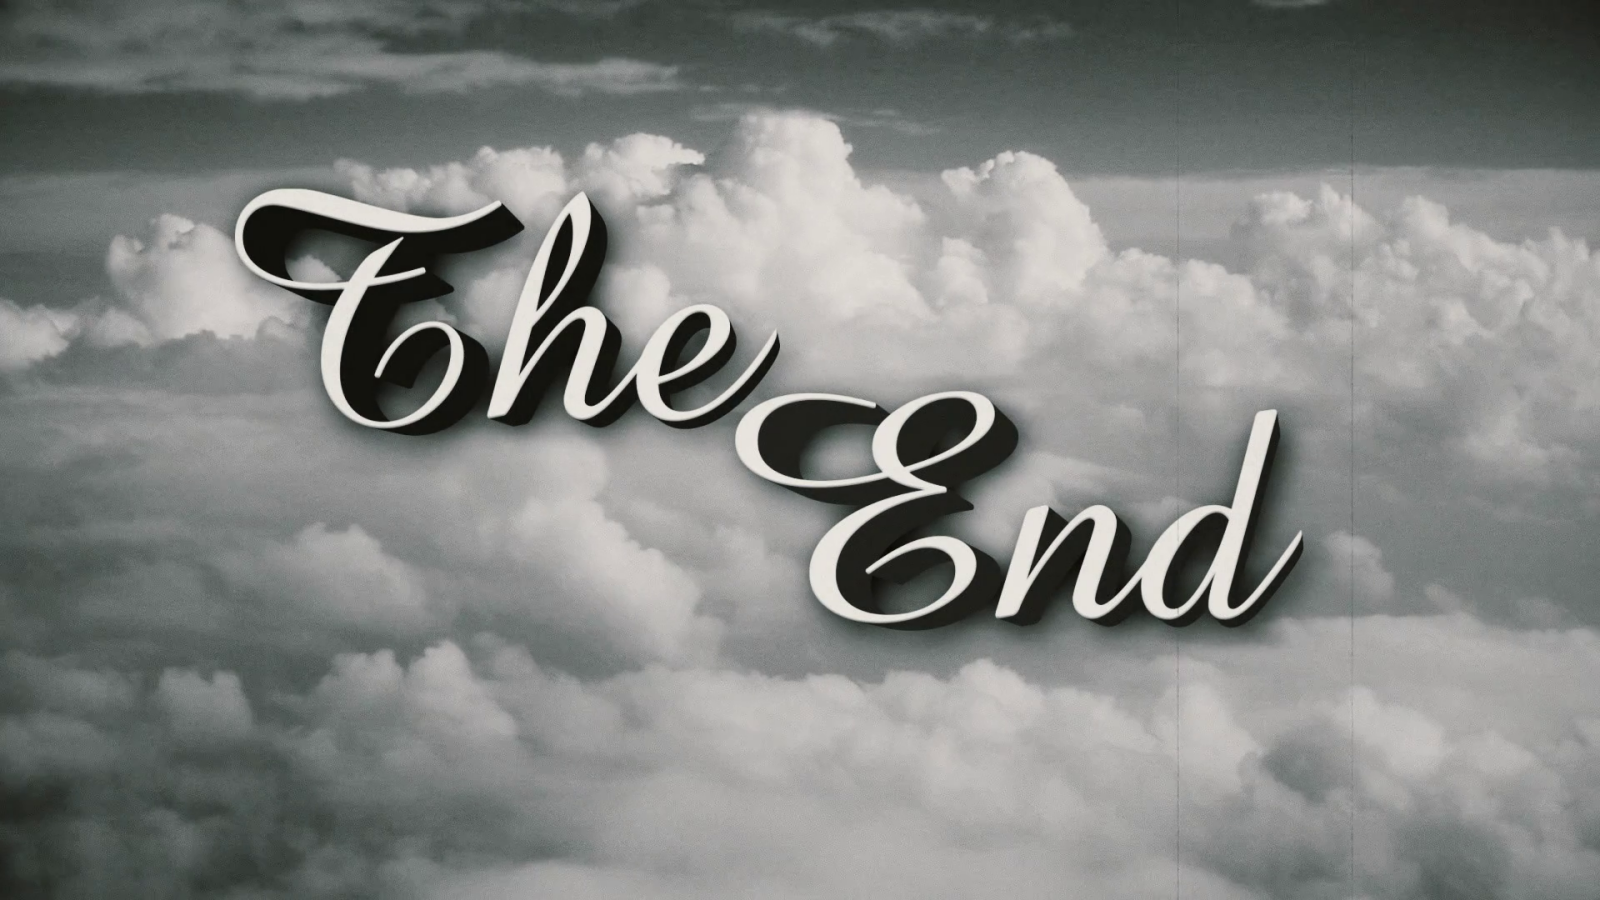 videoblocks a retro old fashioned wizard of oz style the end movie or film end title page includes three distressed film options plus normal clean version blyaml72x thumbnail full09